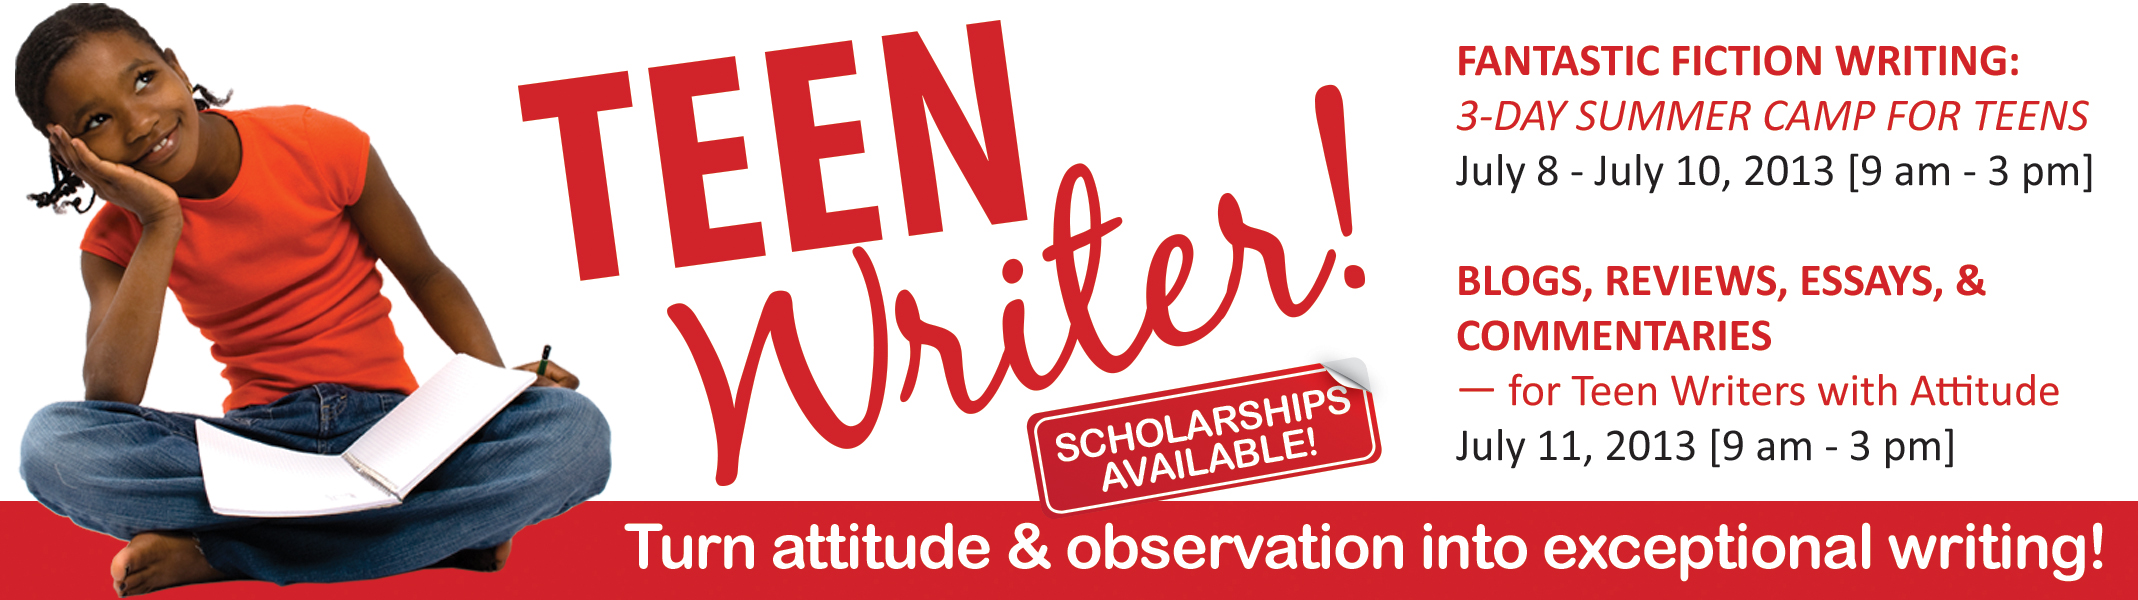 2013 Teen Writer Camps